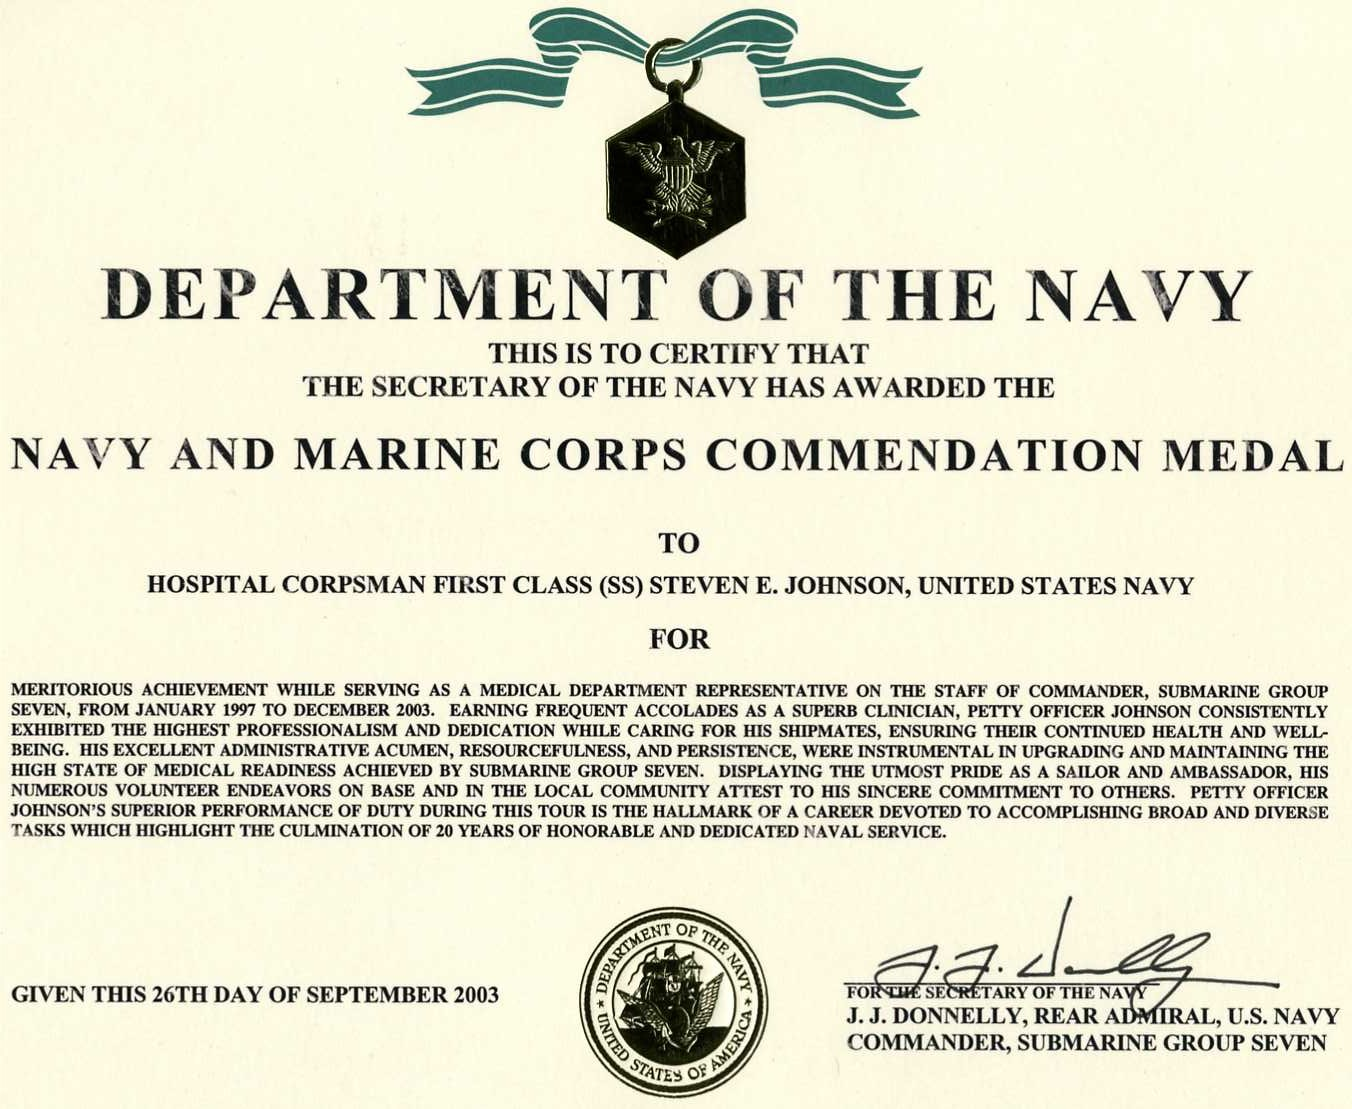 certificate of commendation usmc template - po1 steven johnson hm1 ss of all the medals awards